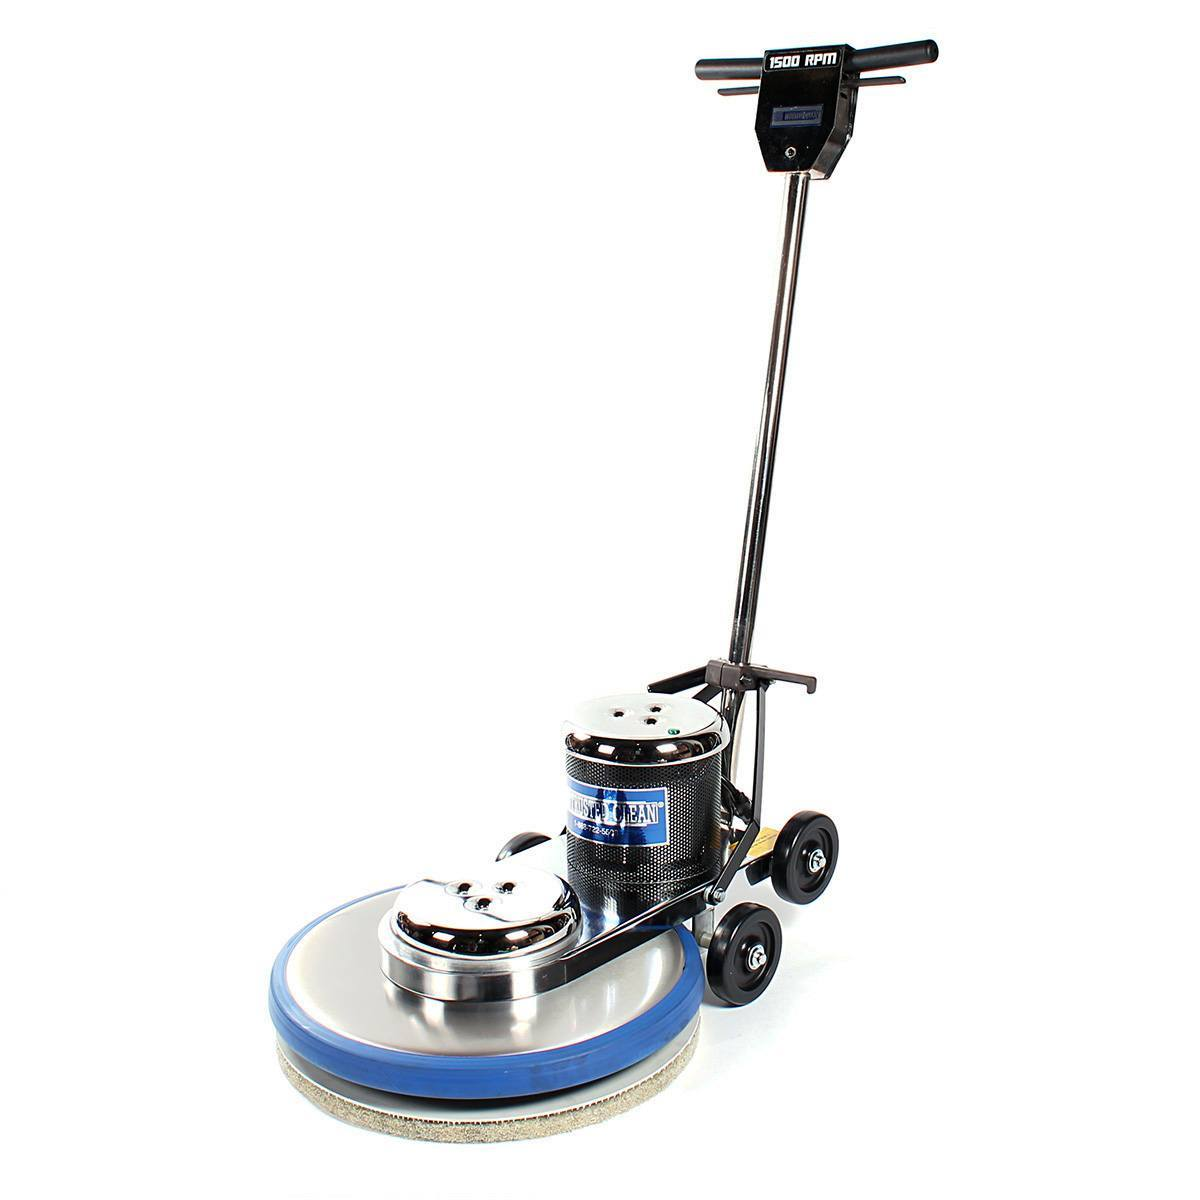 Trusted Clean 20 Inch High Speed Burnisher   1500 RPM